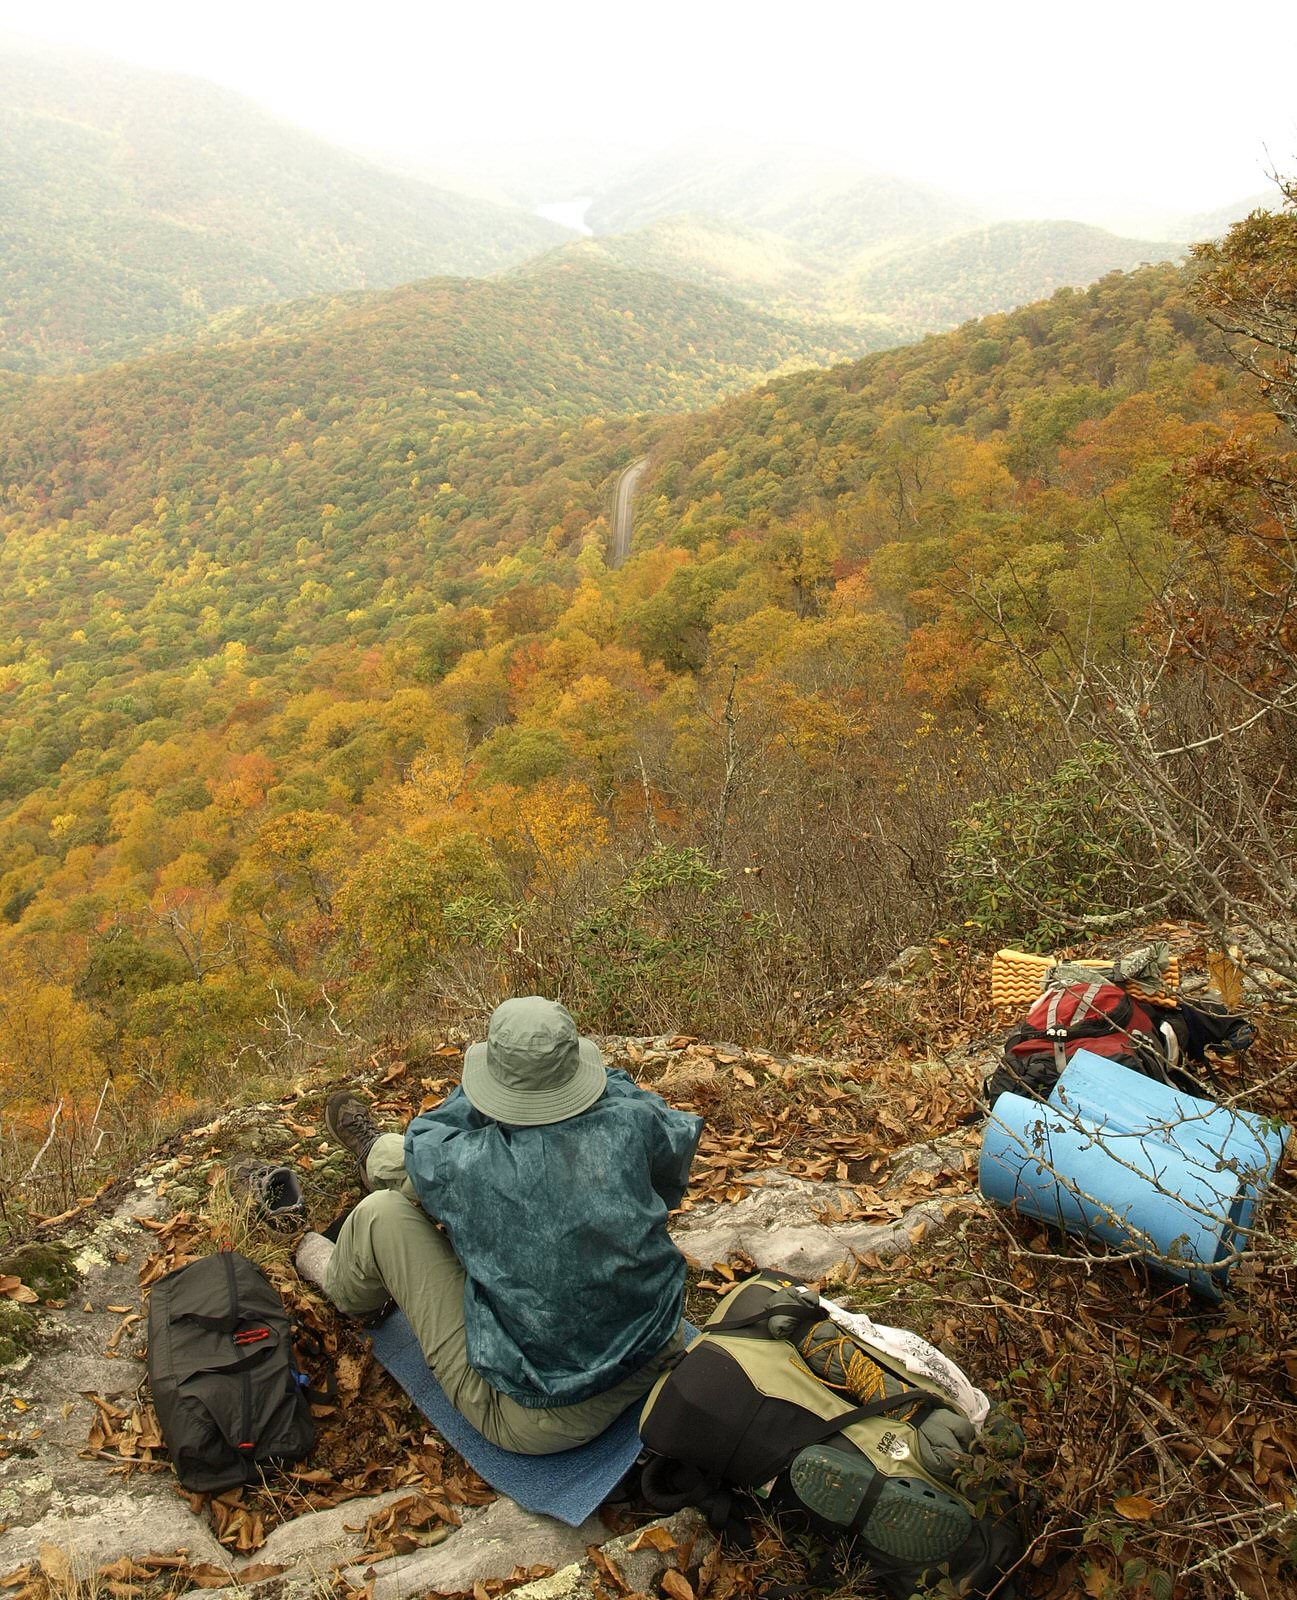 photo: Overlook near Lane Pinnacle, a peak east of Asheville, NC during peak fall foliage. Photo by Matt Mutel.